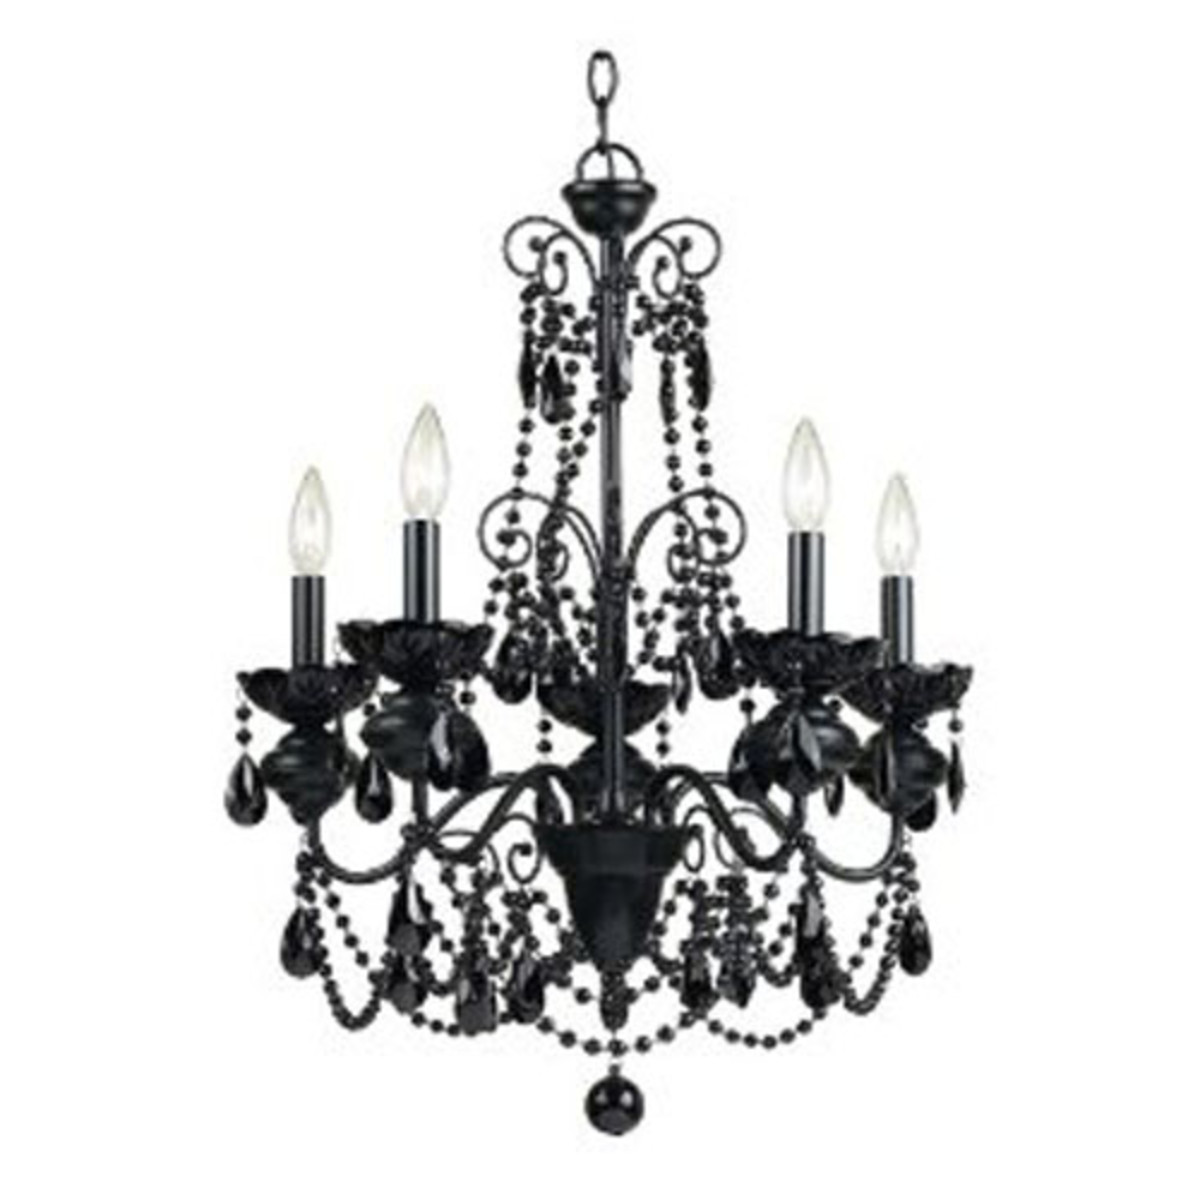 black chandelier would be unexpected and fresh in a pastel colored